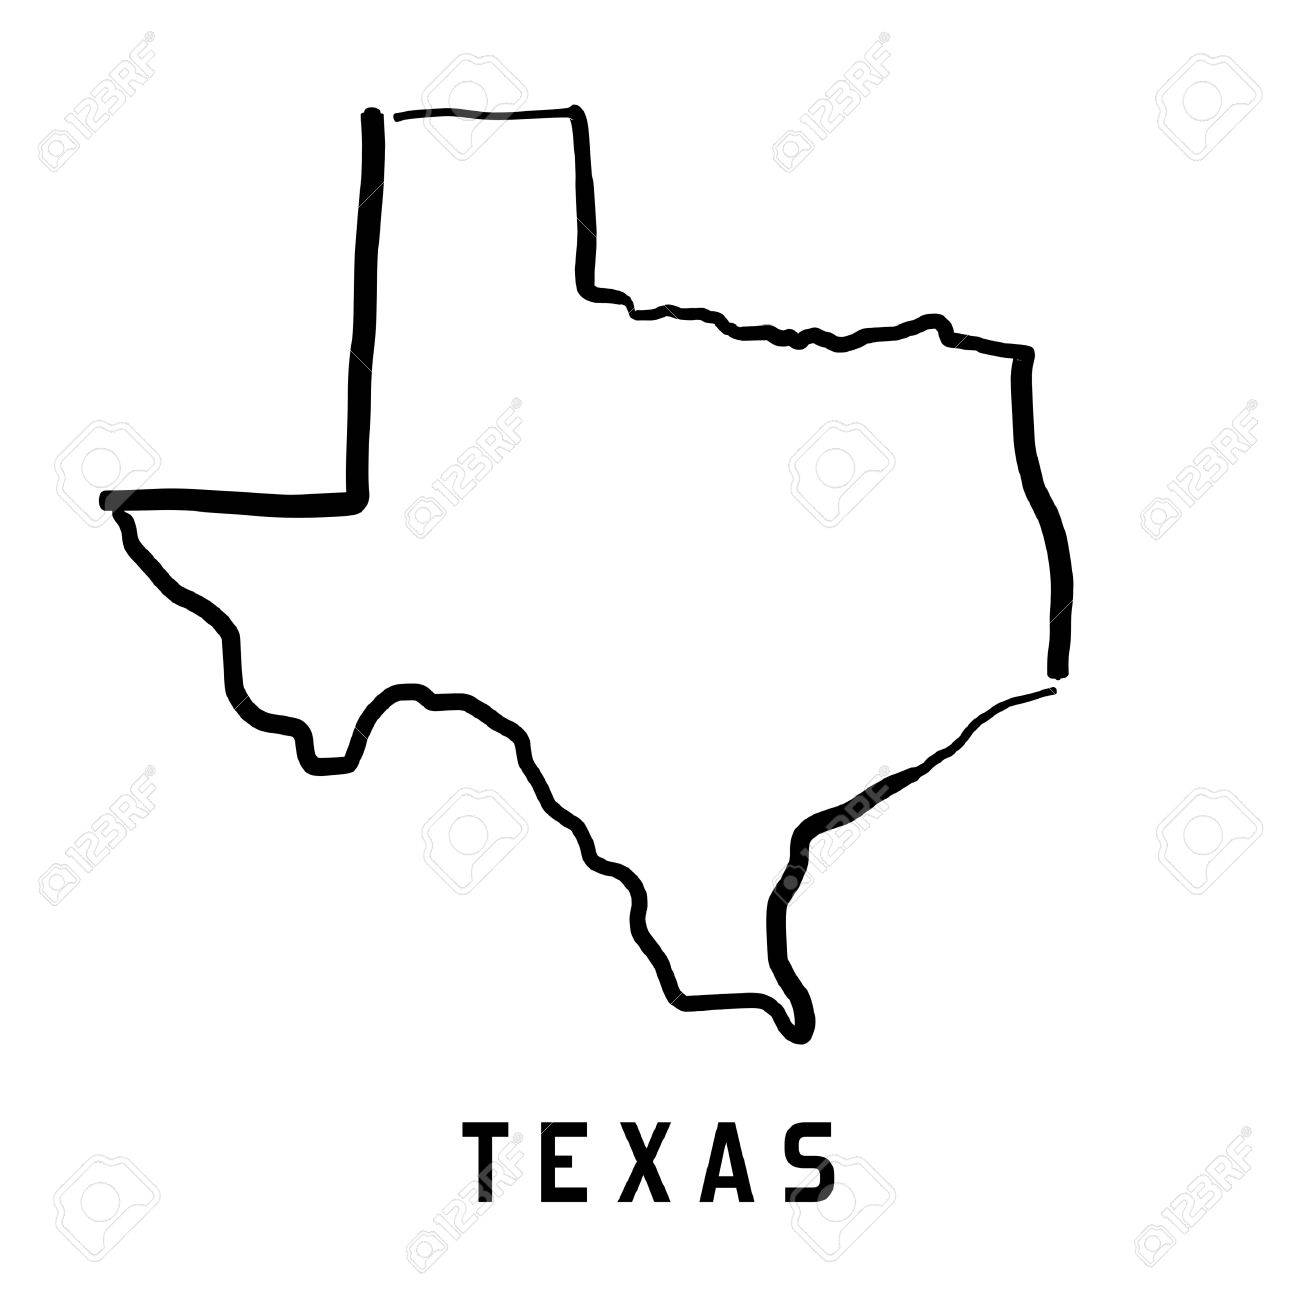 texas map outline smooth simplified us state shape map vector rh 123rf com texas state outline vector texas outline vector file free